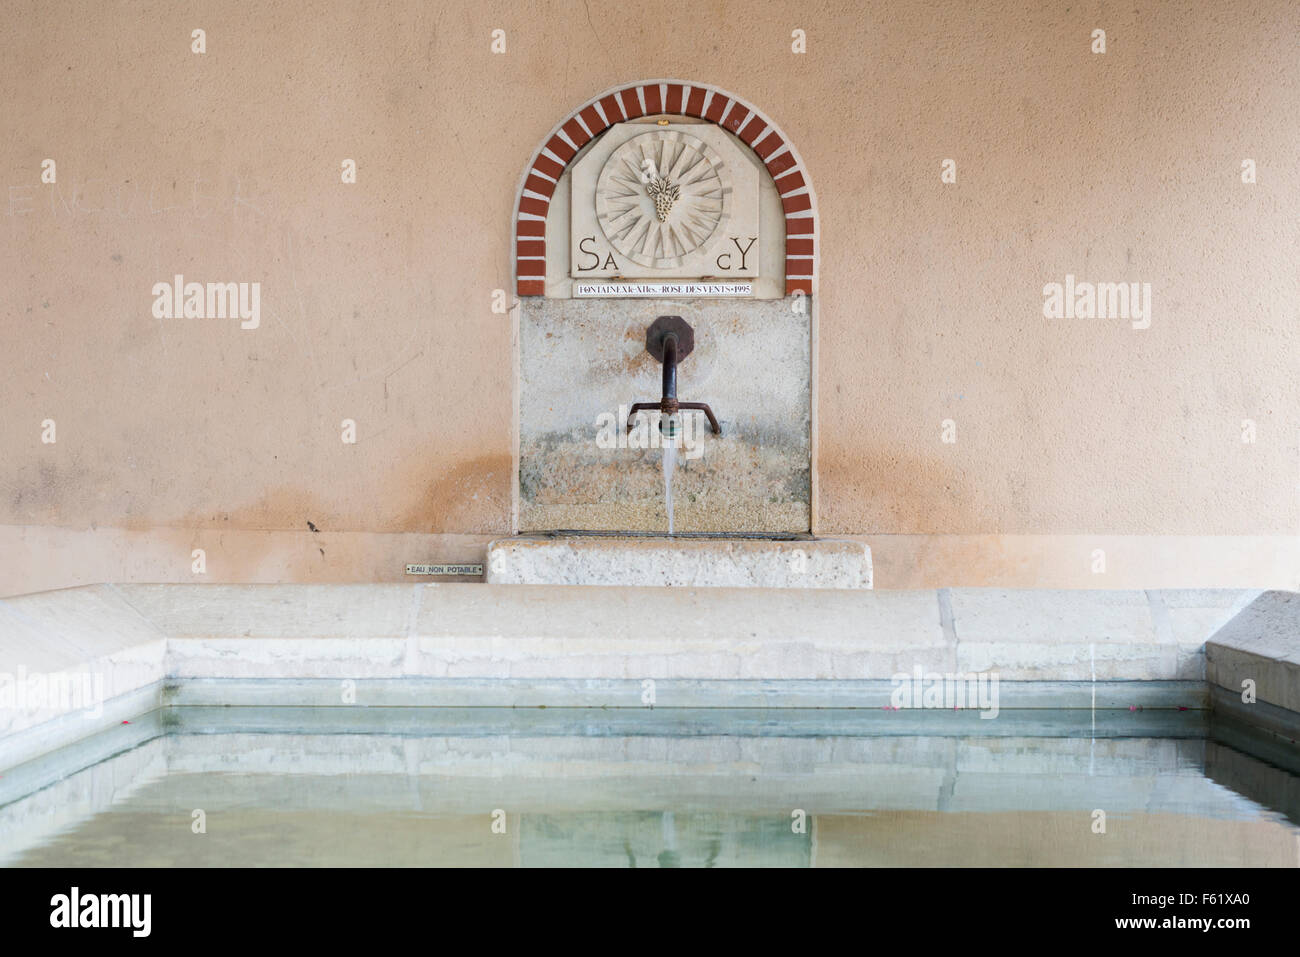 A tap and drinking water fountain in the town of Sacy, Champagne France - Stock Image